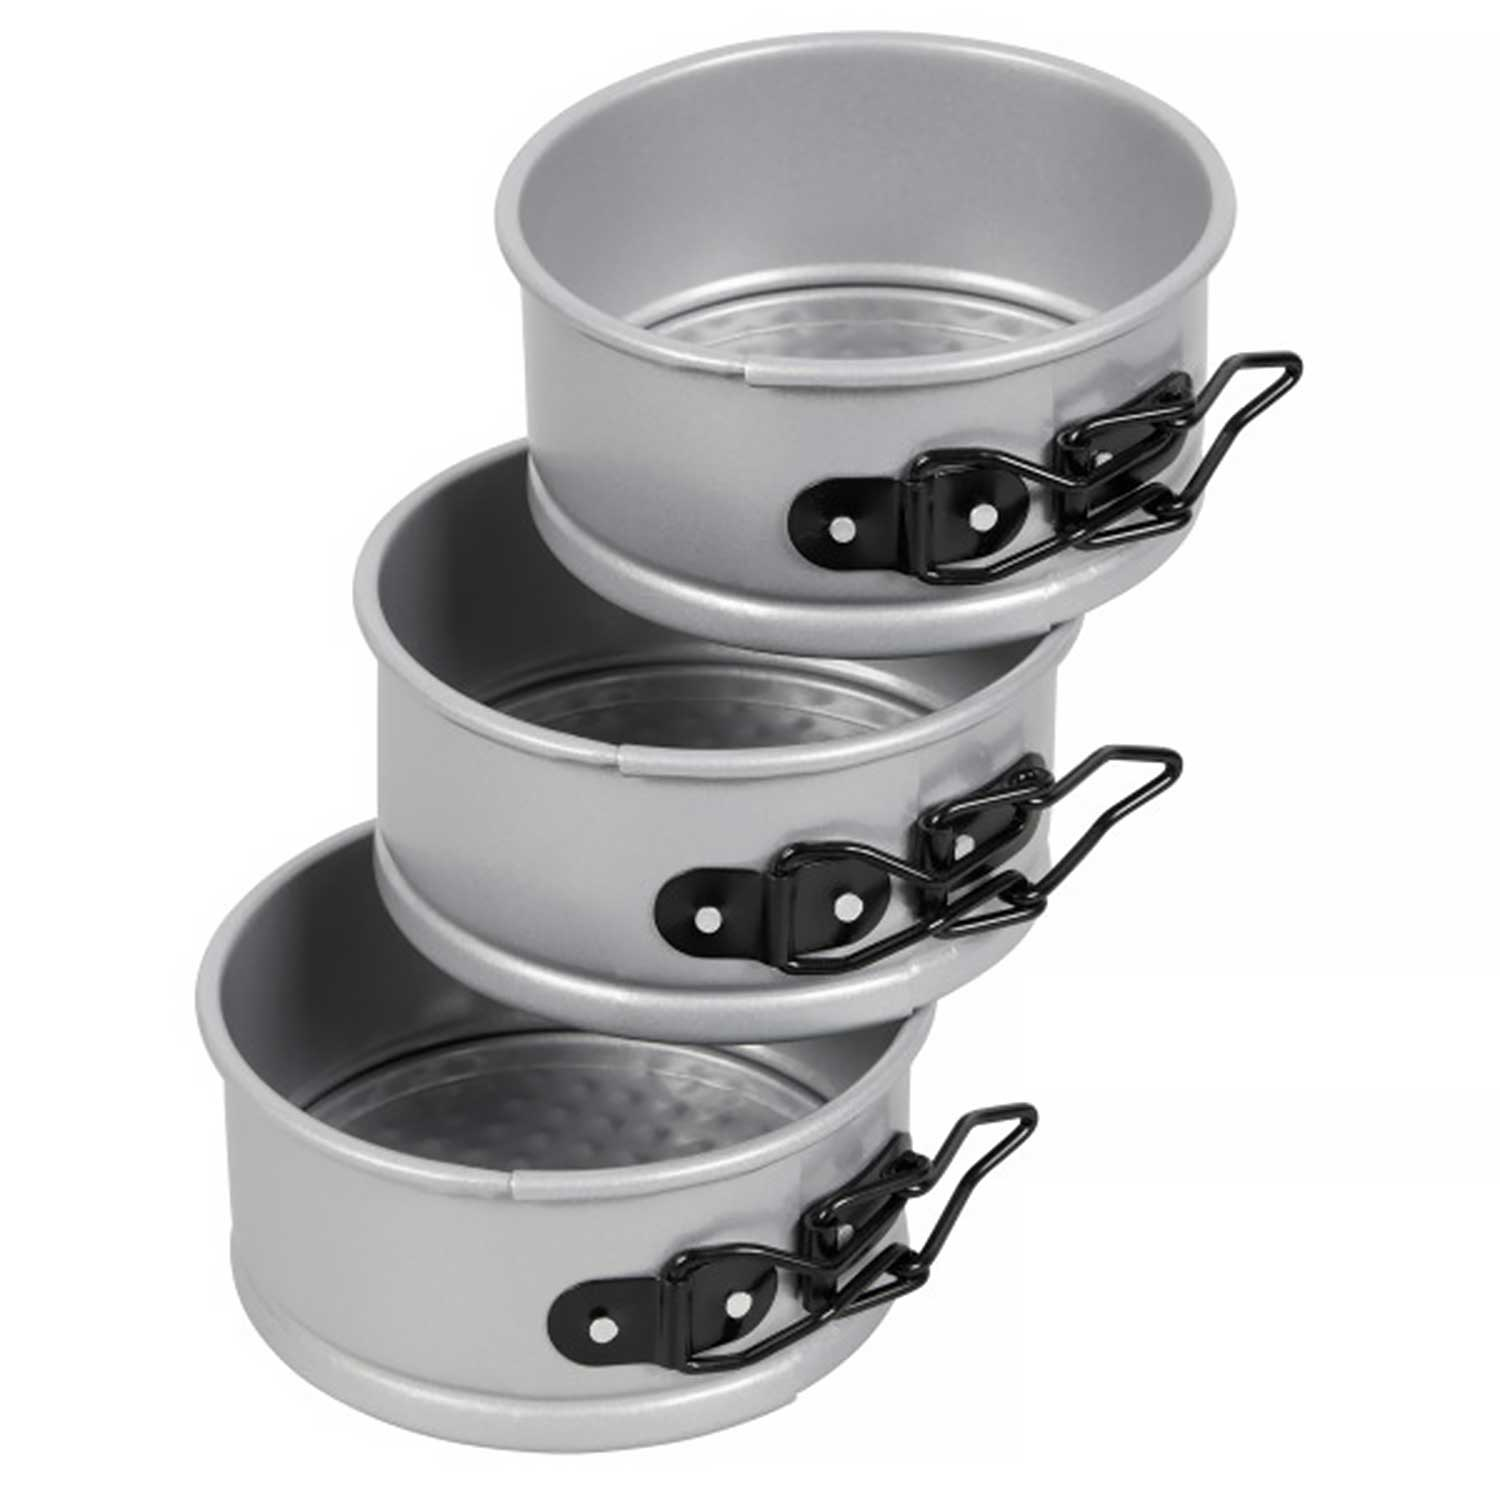 Bear 3D Mini Cake Pan